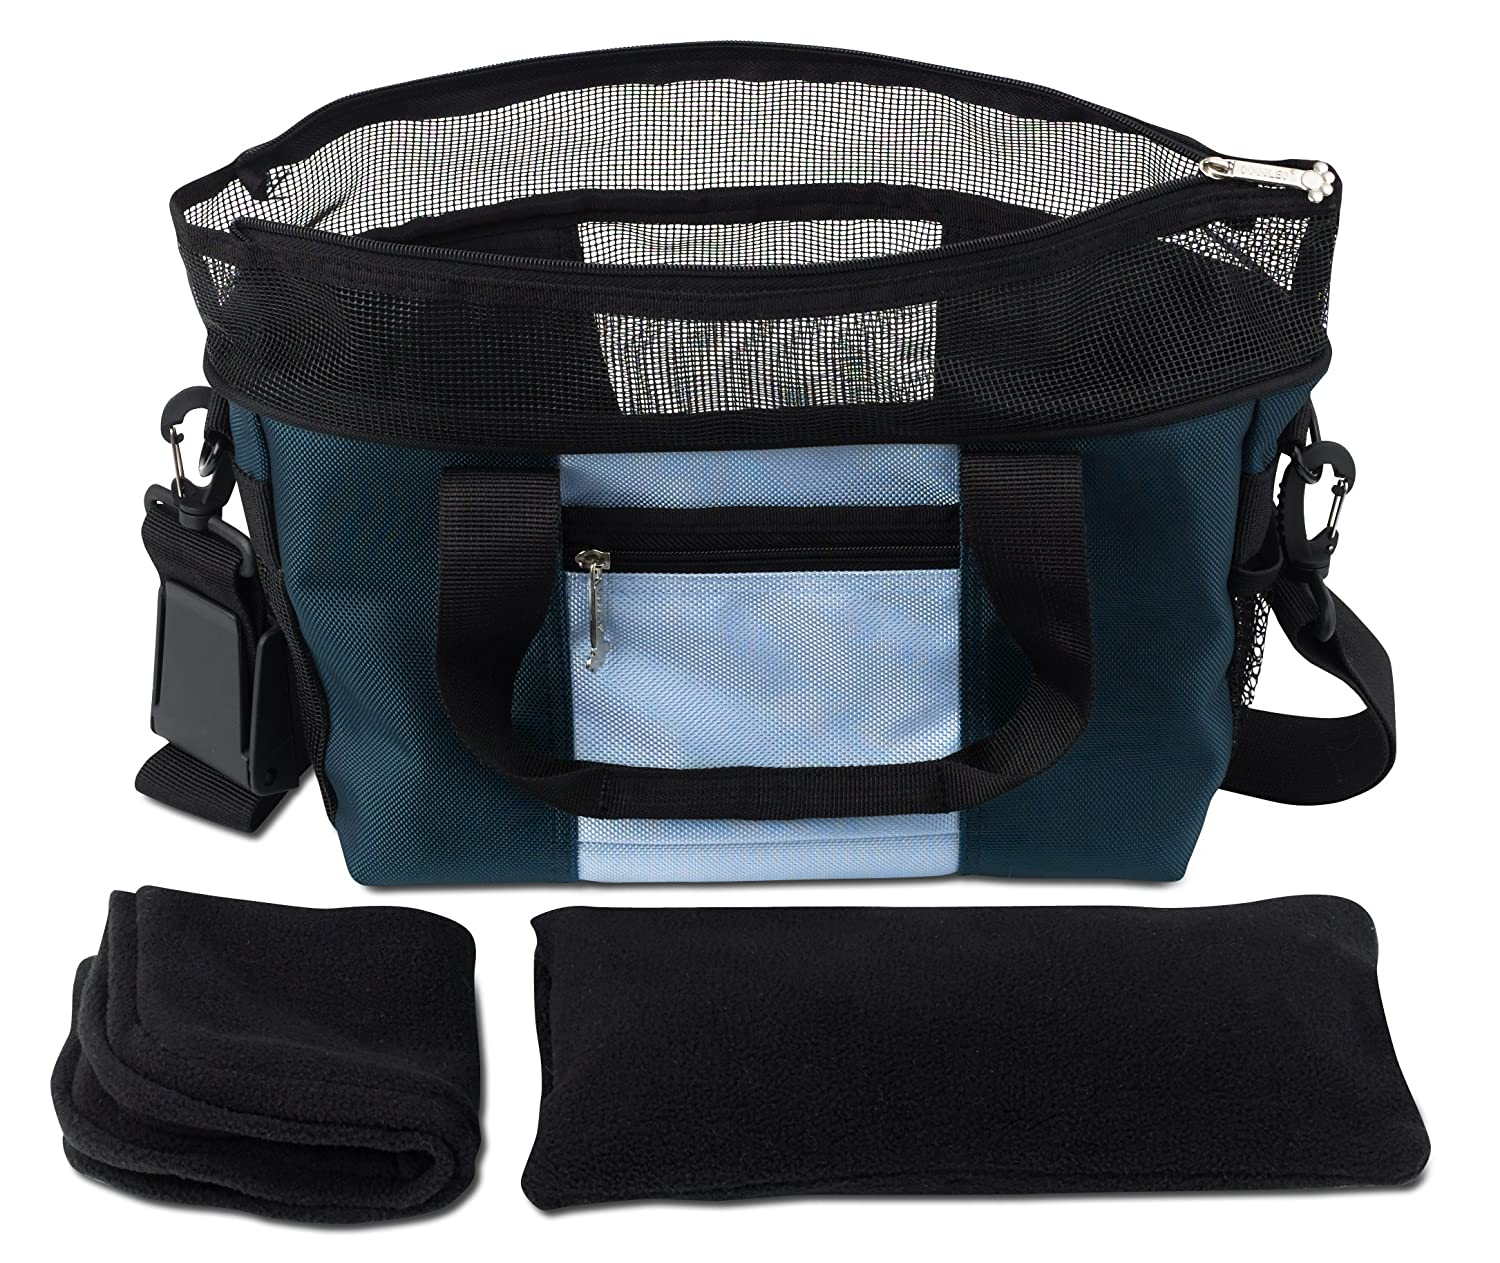 bluee Large bluee Large Doggles Dog Carrier Denier Messenger Bag, Large, bluee Dog Carrier